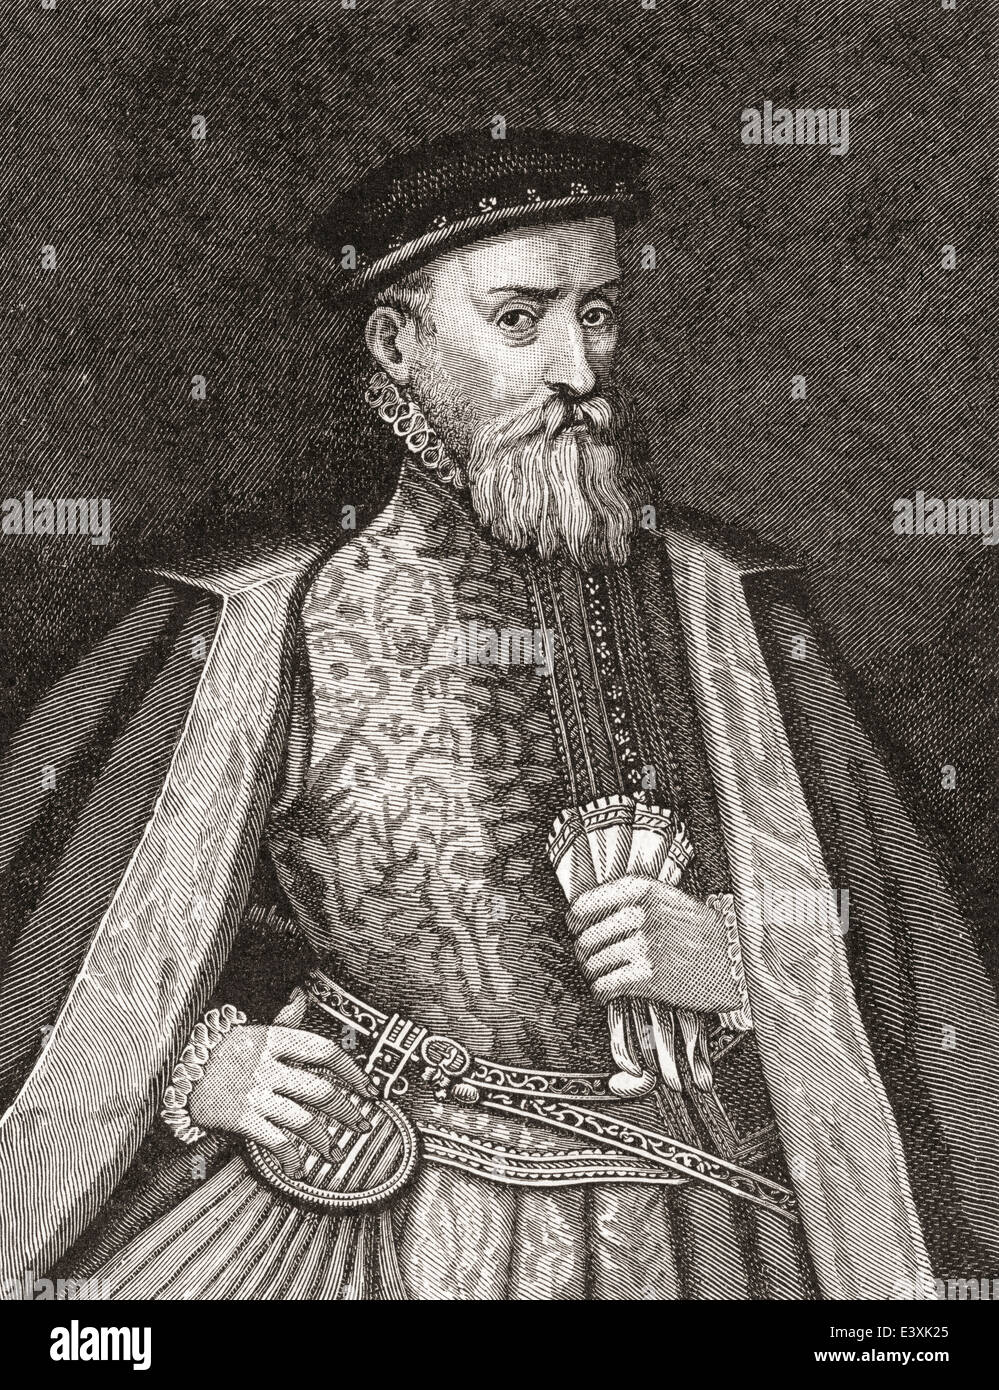 Sir Thomas Gresham, c. 1519 –1579, aka Thomas Gresham the Elder. English merchant and financier. Stock Photo